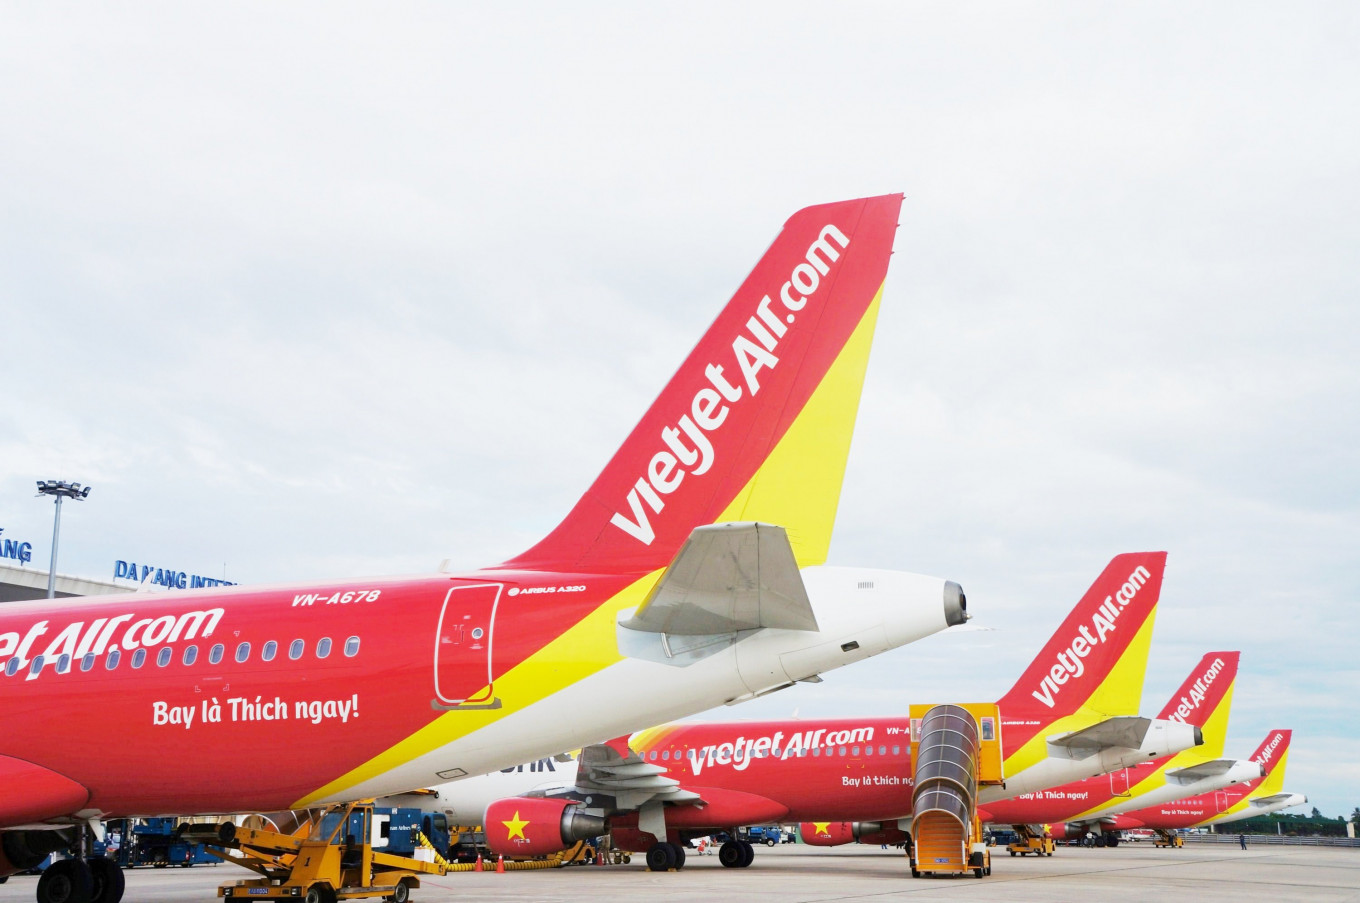 Sales begin for Vietjet's new route connecting Bali to Ho Chi Minh City